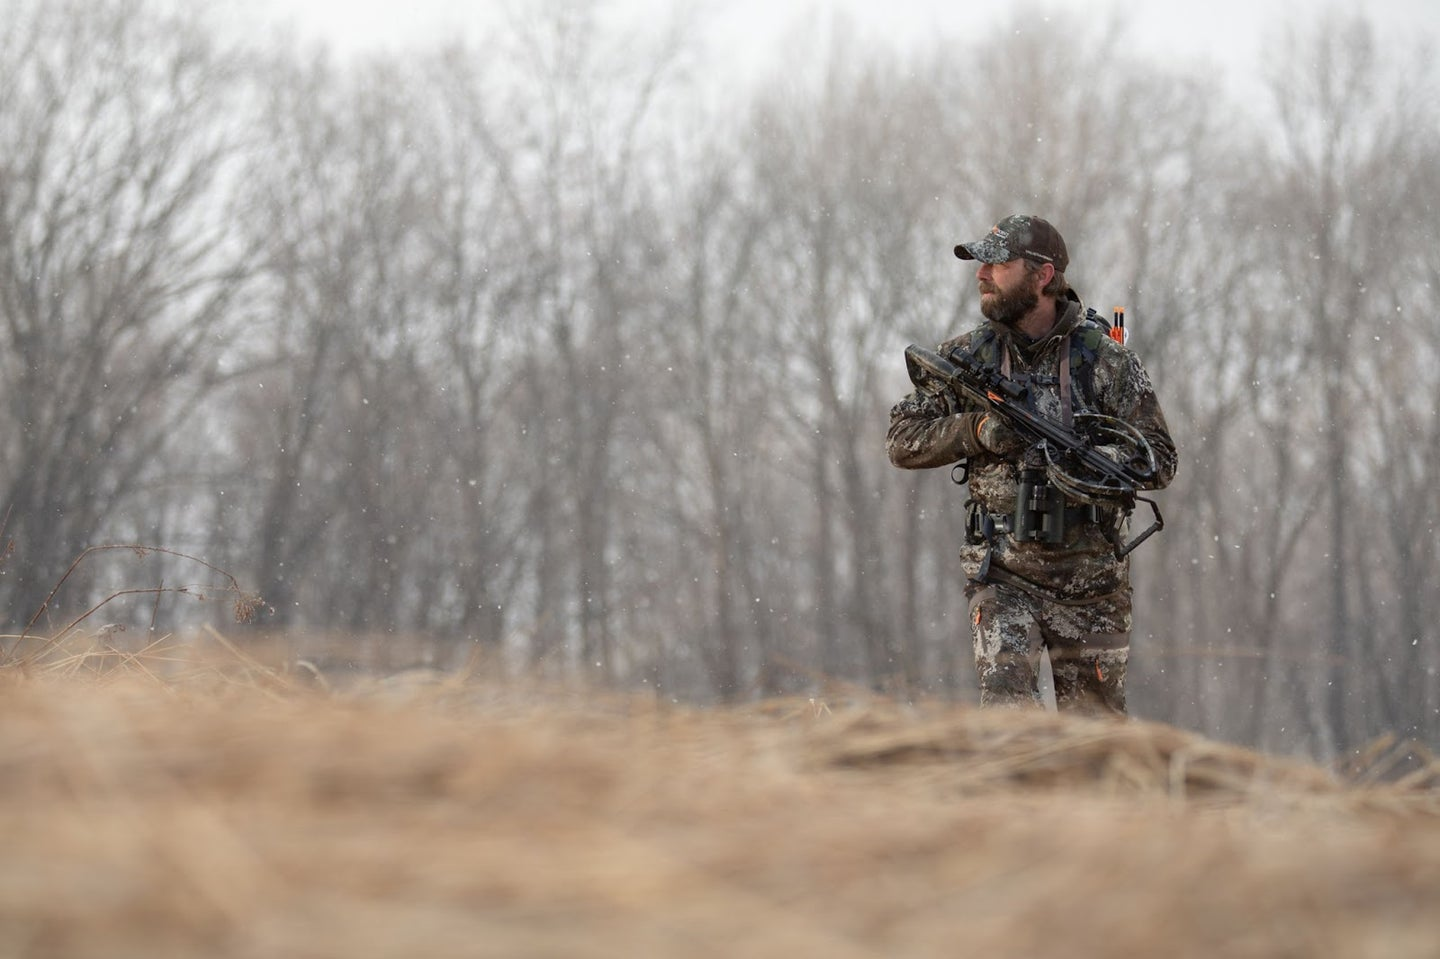 hunter walking with crossbow